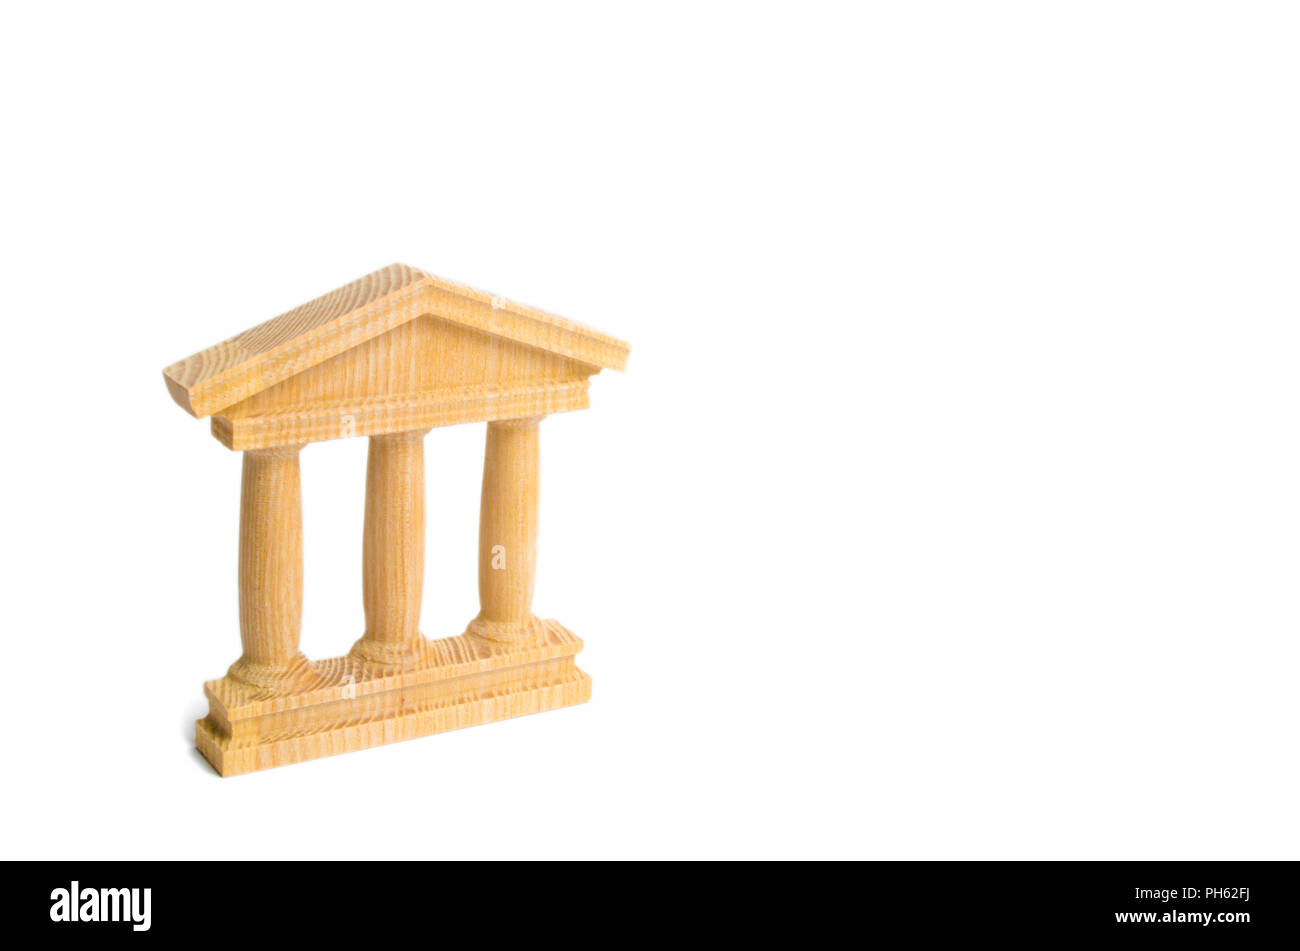 State Building. wooden government building Judge's hammer and money, on a white background. concept of state administration and economic institutions. - Stock Image